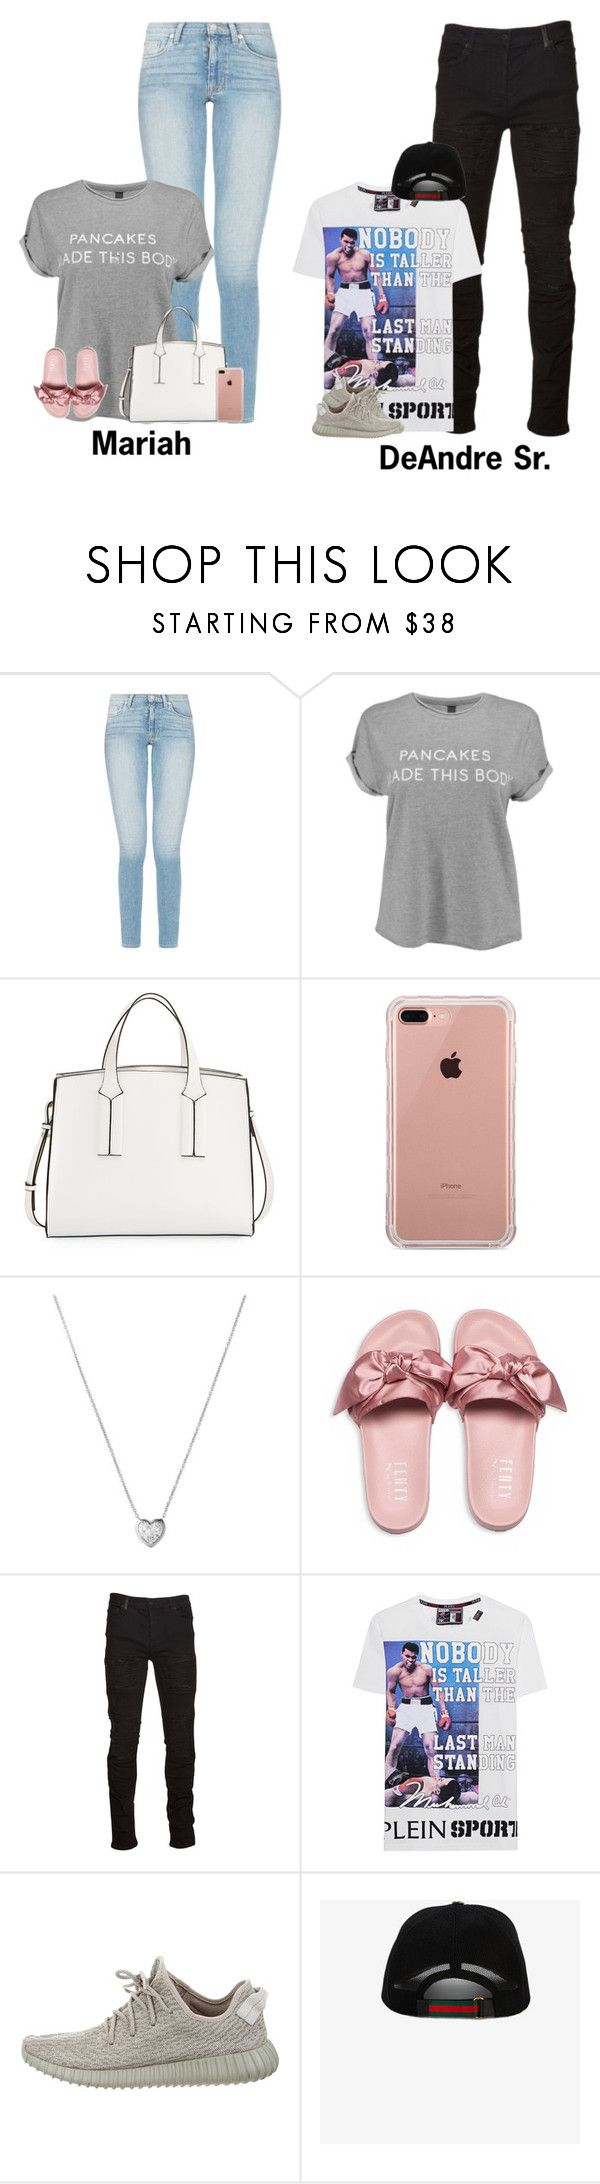 """""""Outlets, Lunch & Park w/ Totes!   The Parents"""" by myhappyfamily ❤ liked on Polyvore featuring French Connection, Belkin, Links of London, Puma, Marcelo Burlon, Plein Sport, Yeezy by Kanye West and Gucci"""